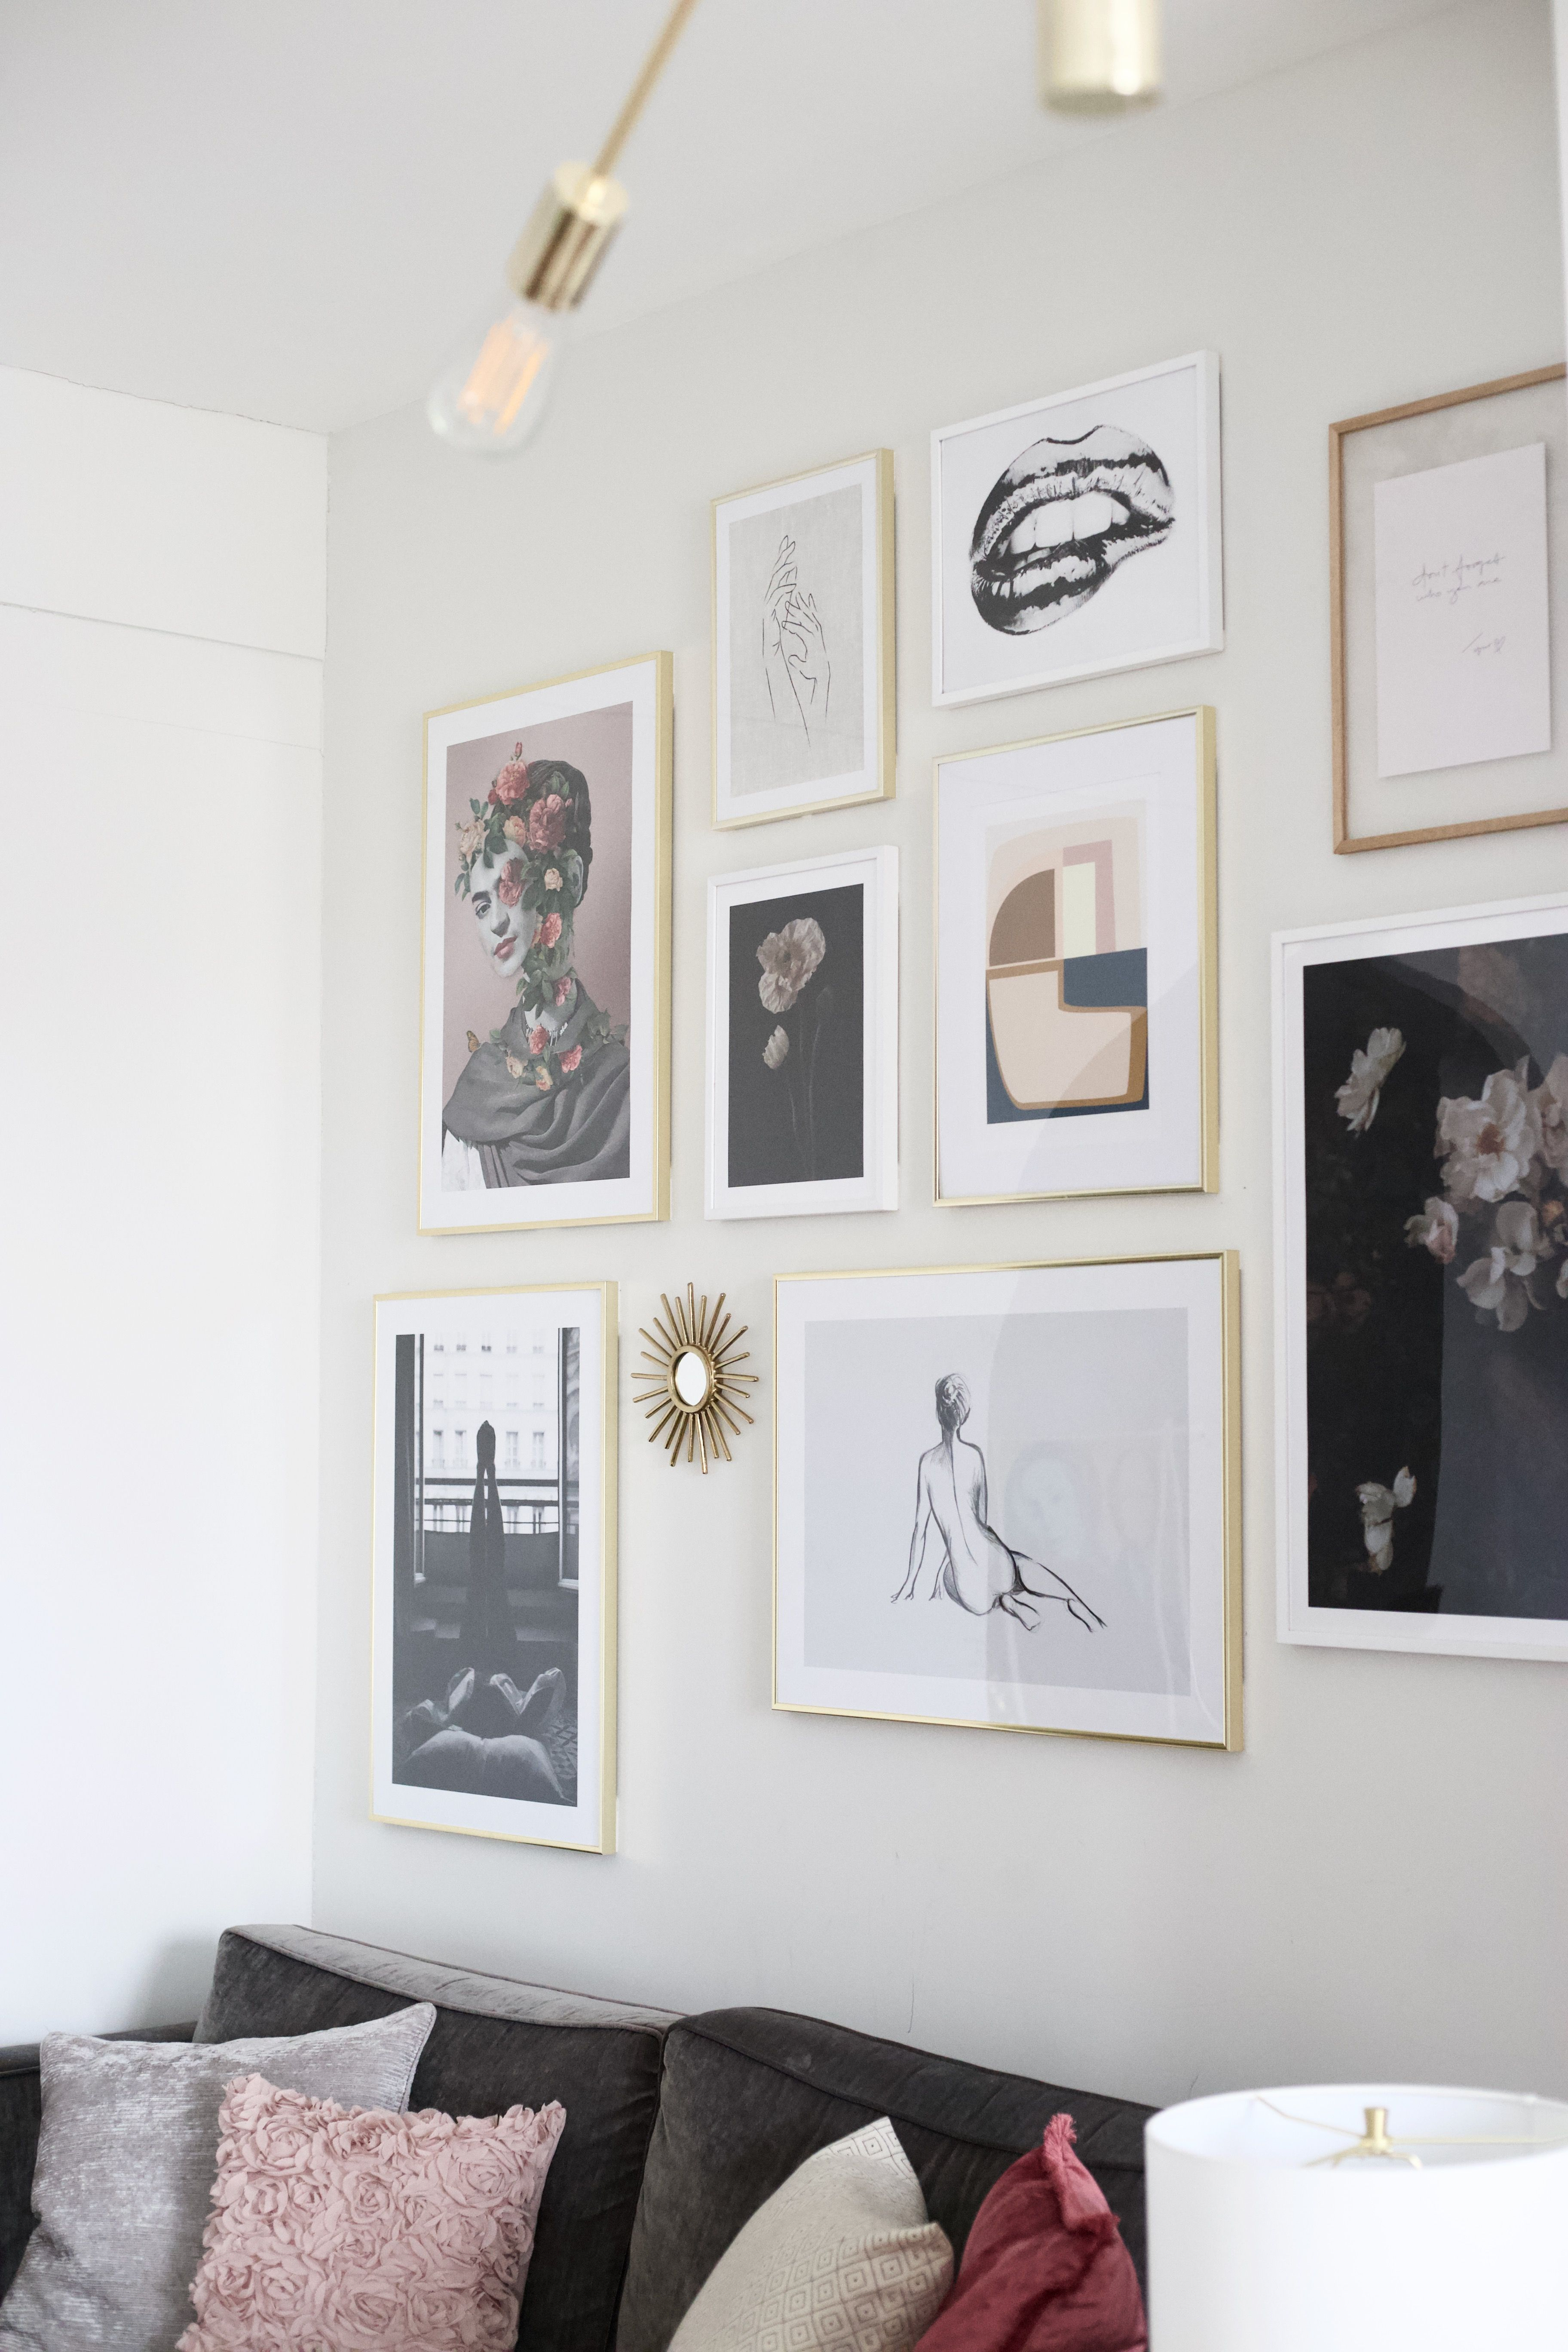 Gallery Wall Goals Using Desenio Posters Wall Art Decor Inspiration With Gold Frames Living Room Renovation Decor Living Room Spaces